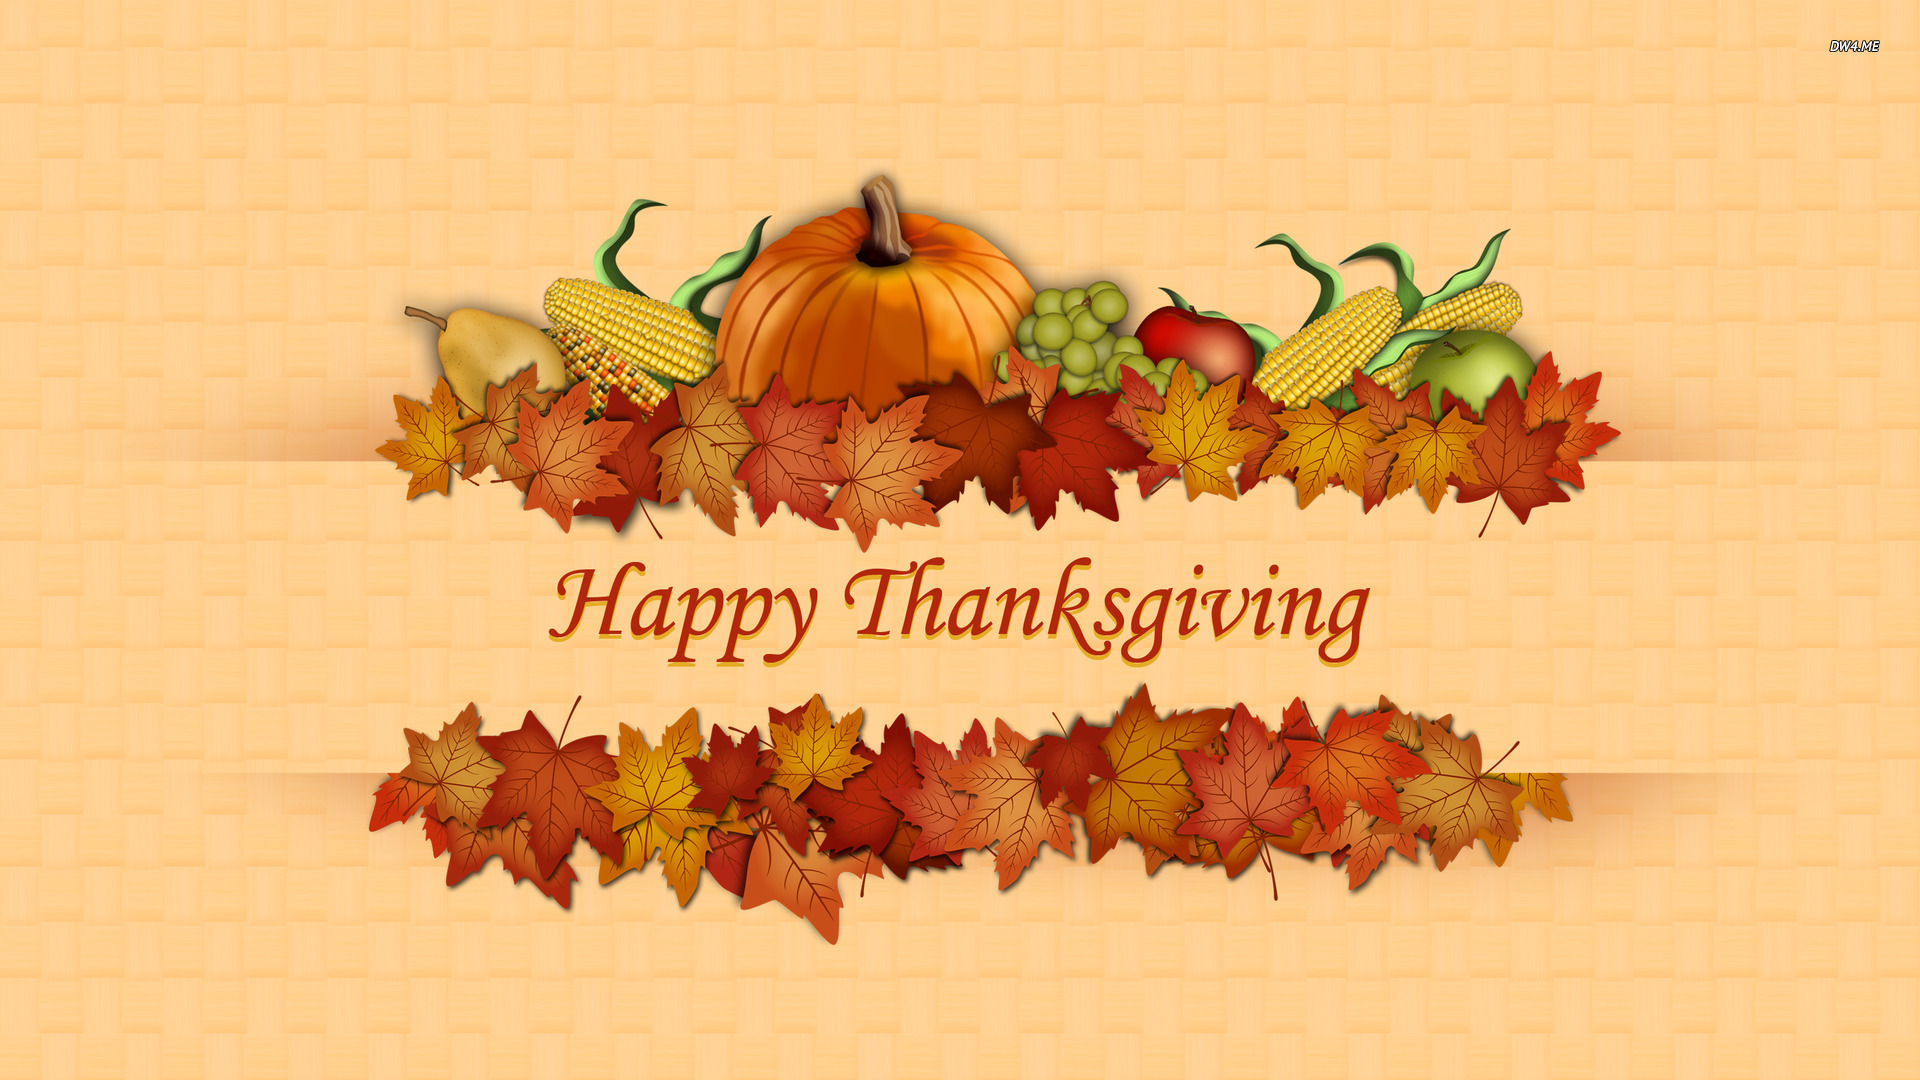 78] Thanksgiving Wallpaper Desktop on WallpaperSafari 1920x1080